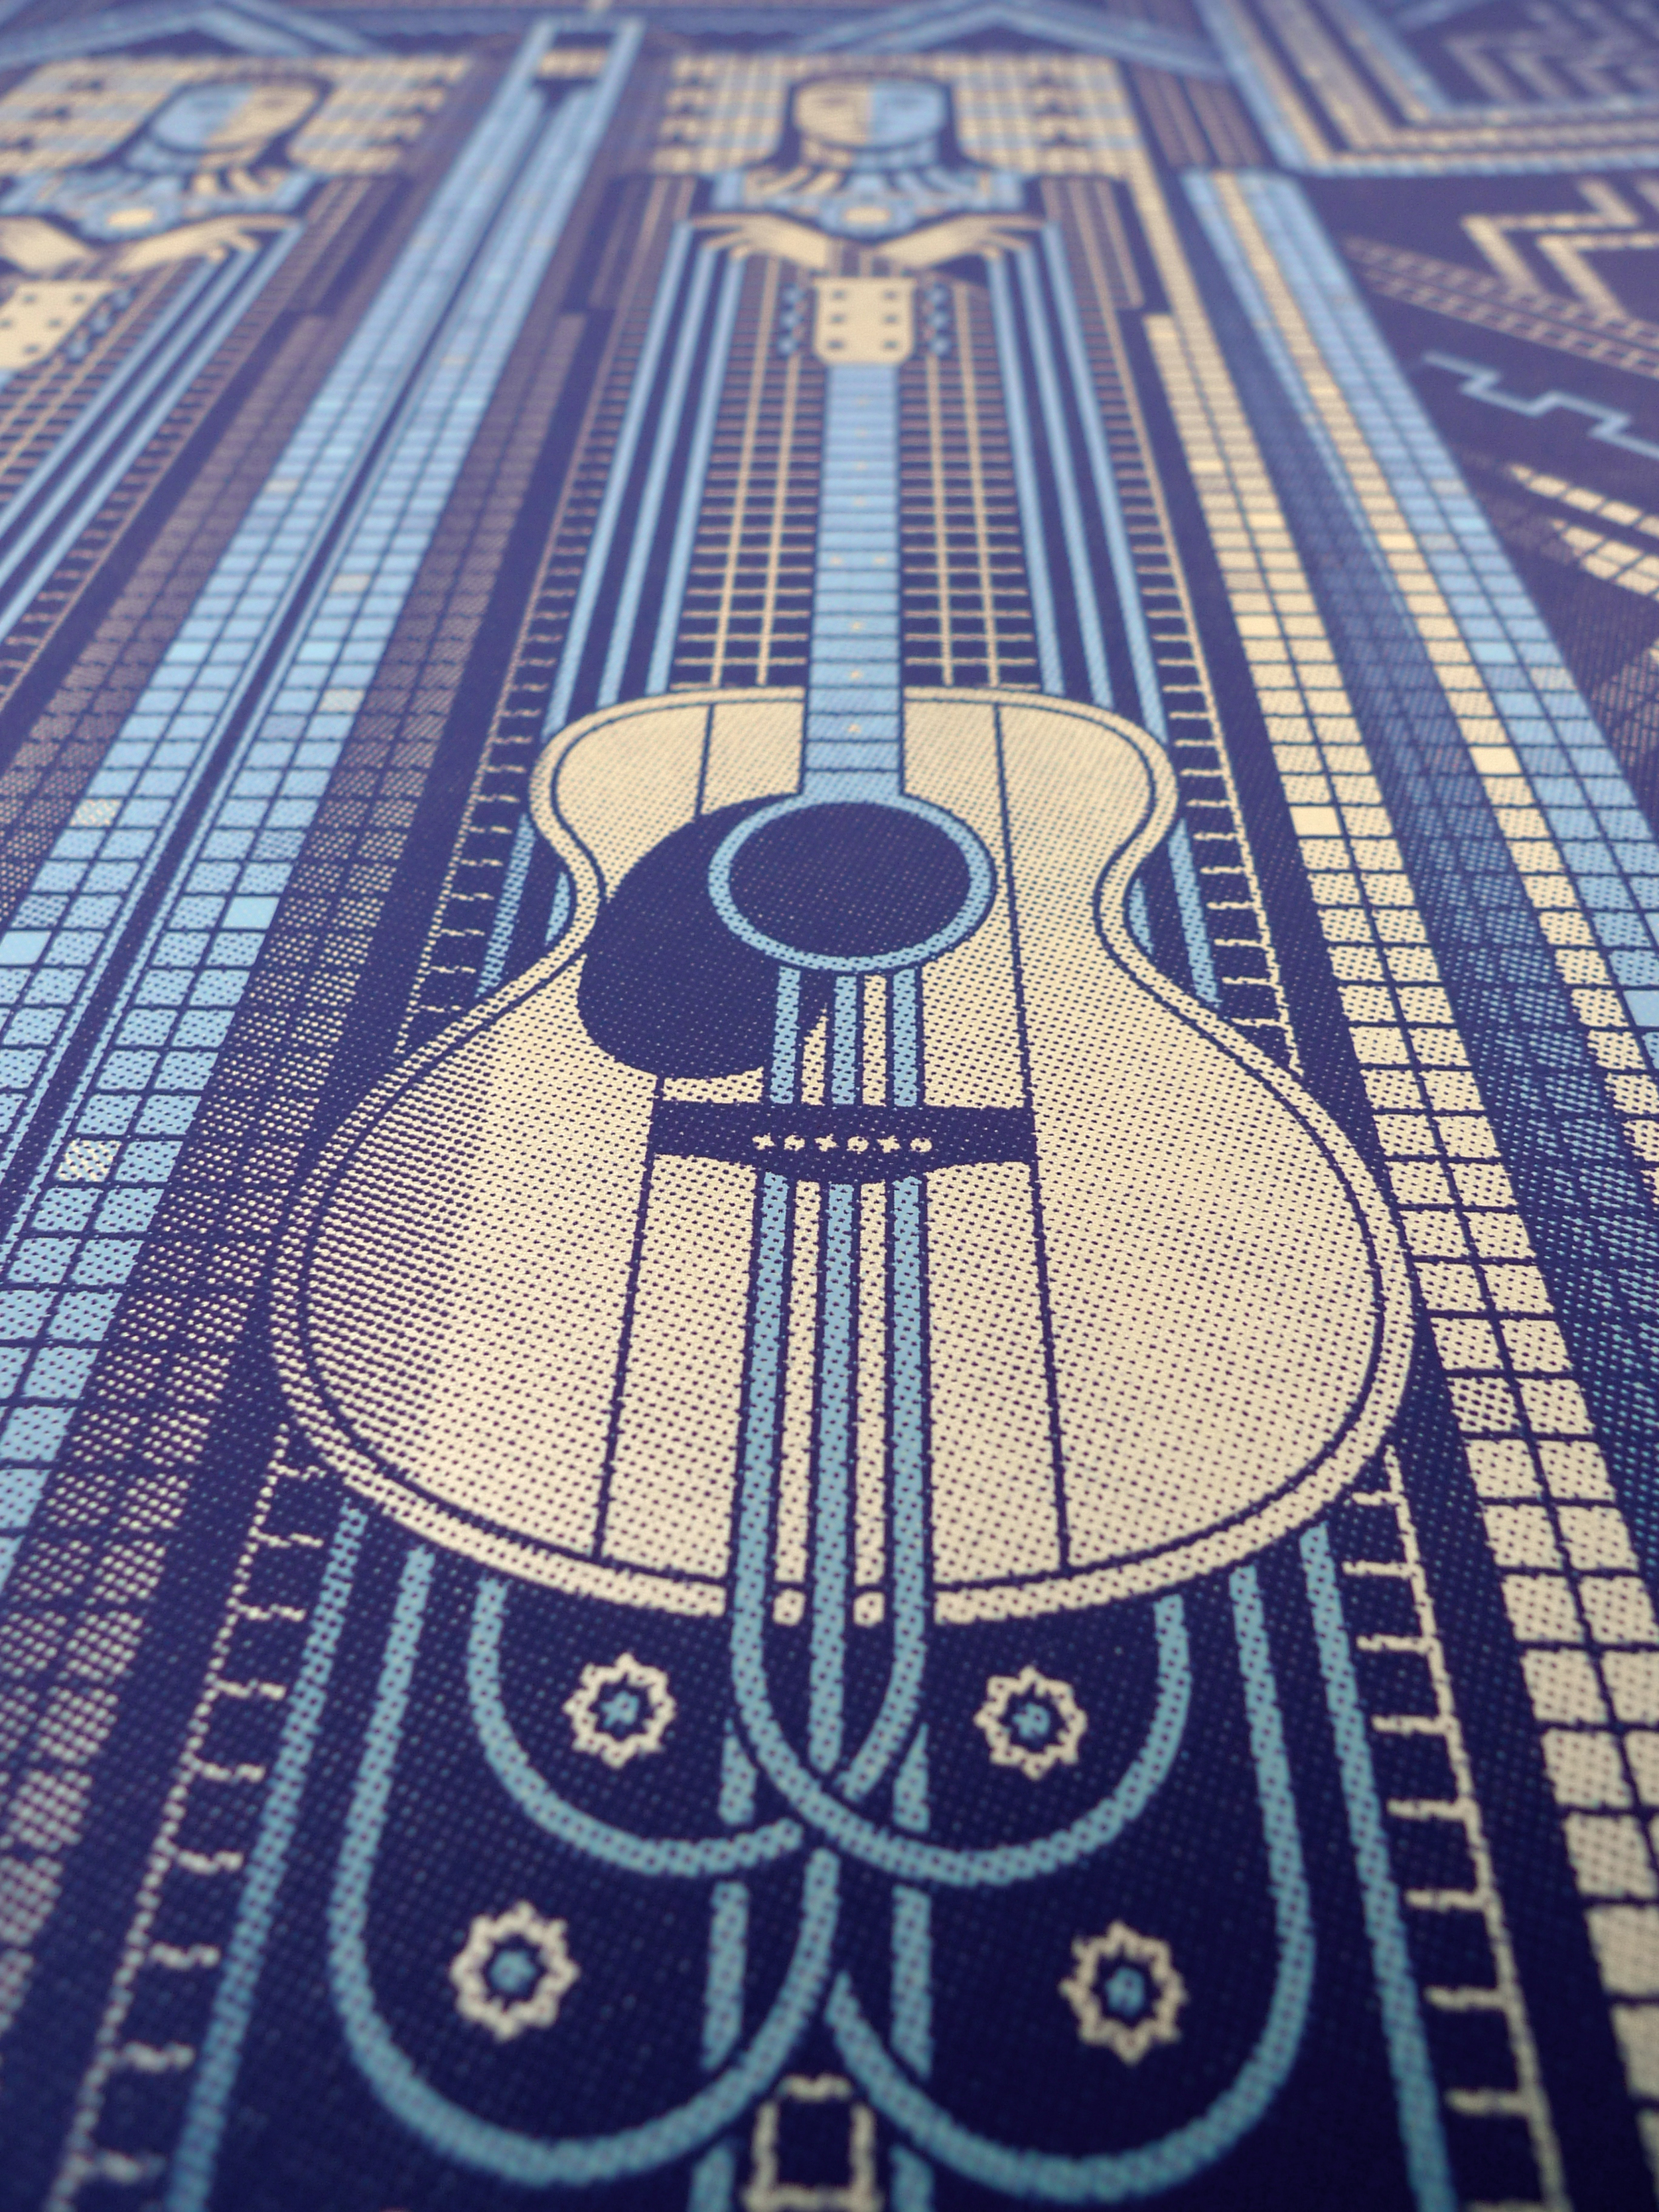 Dave Matthews and Tim Reynolds Oakland Poster by DKNG